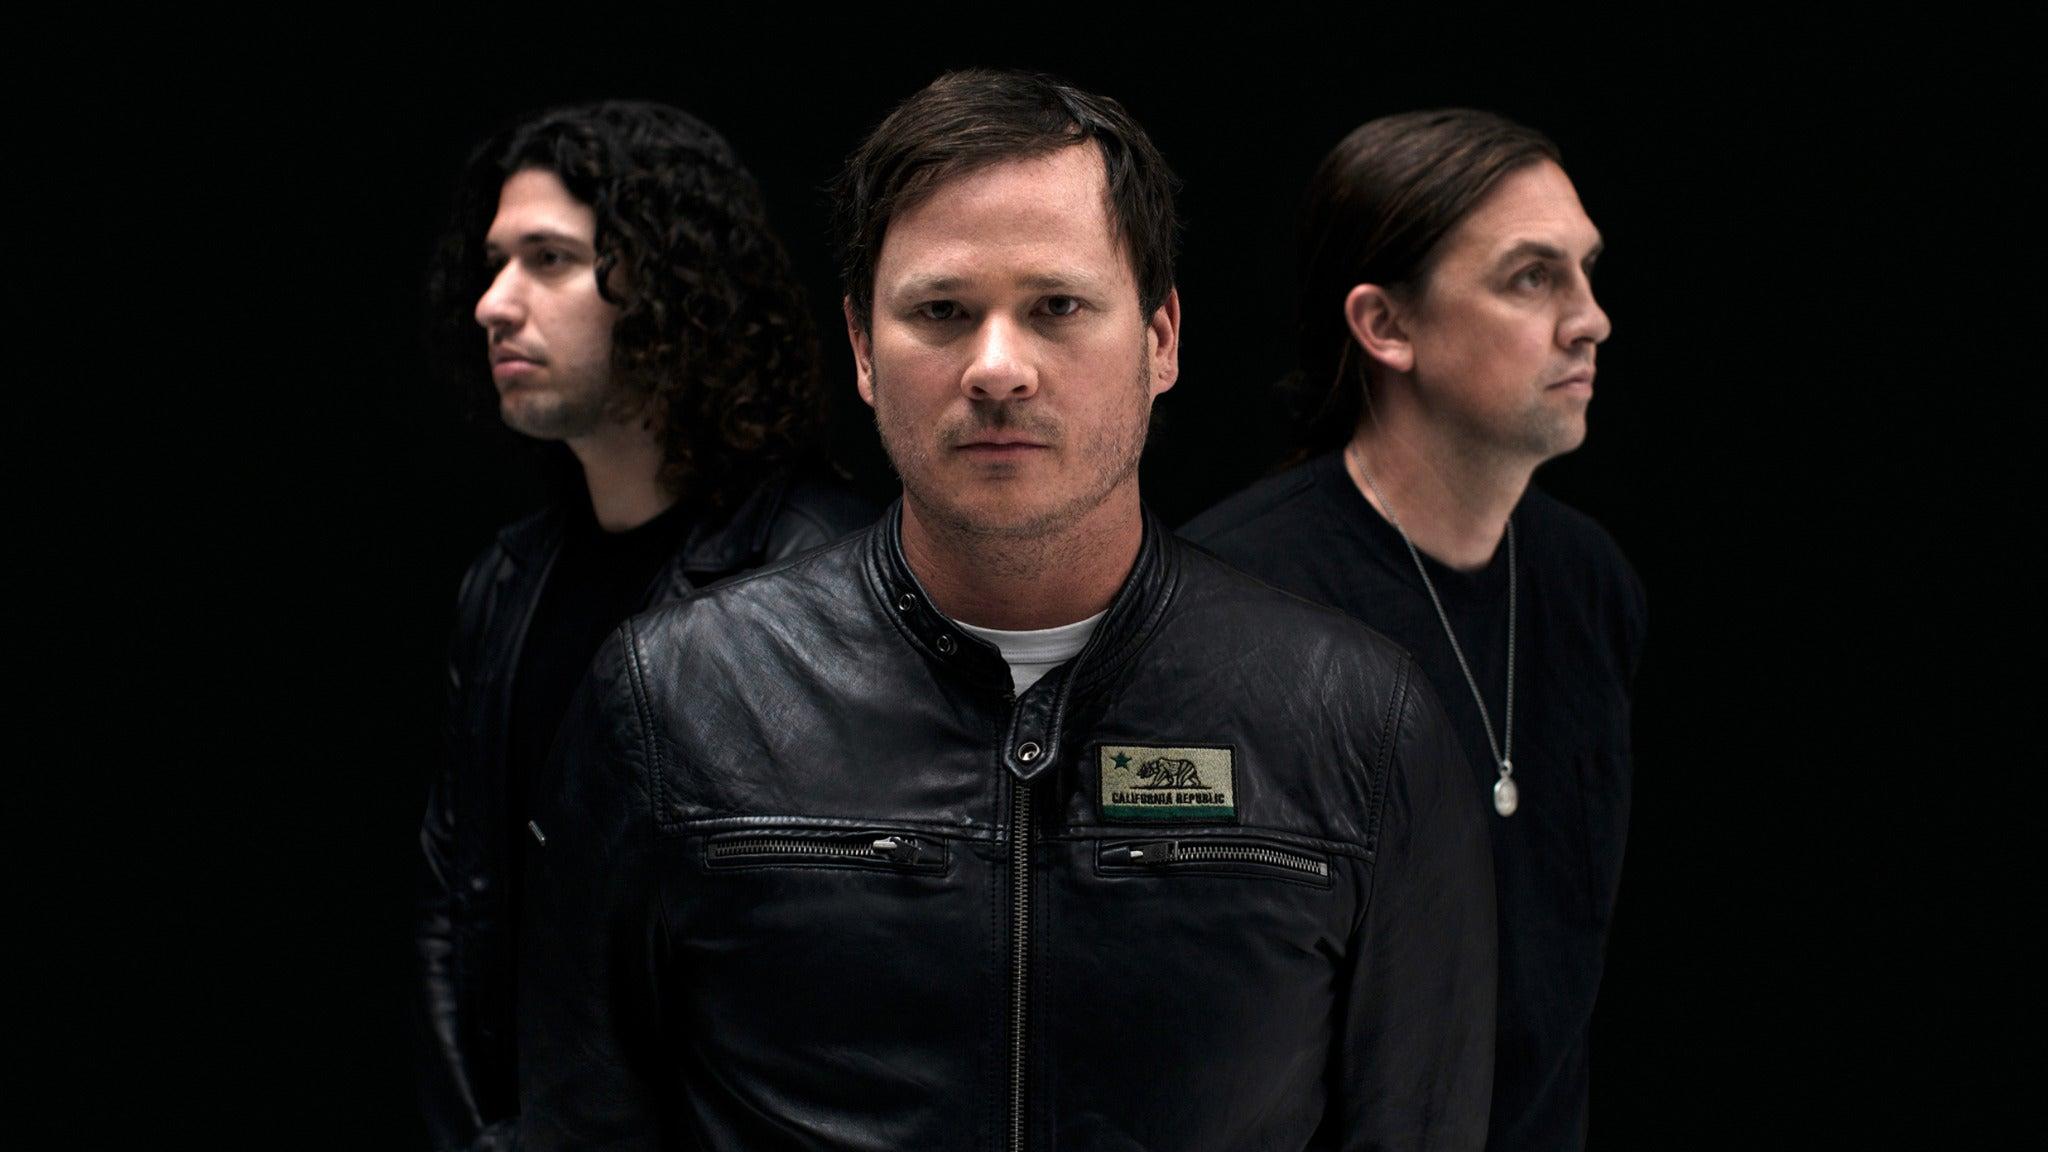 Angels & Airwaves at The Paramount